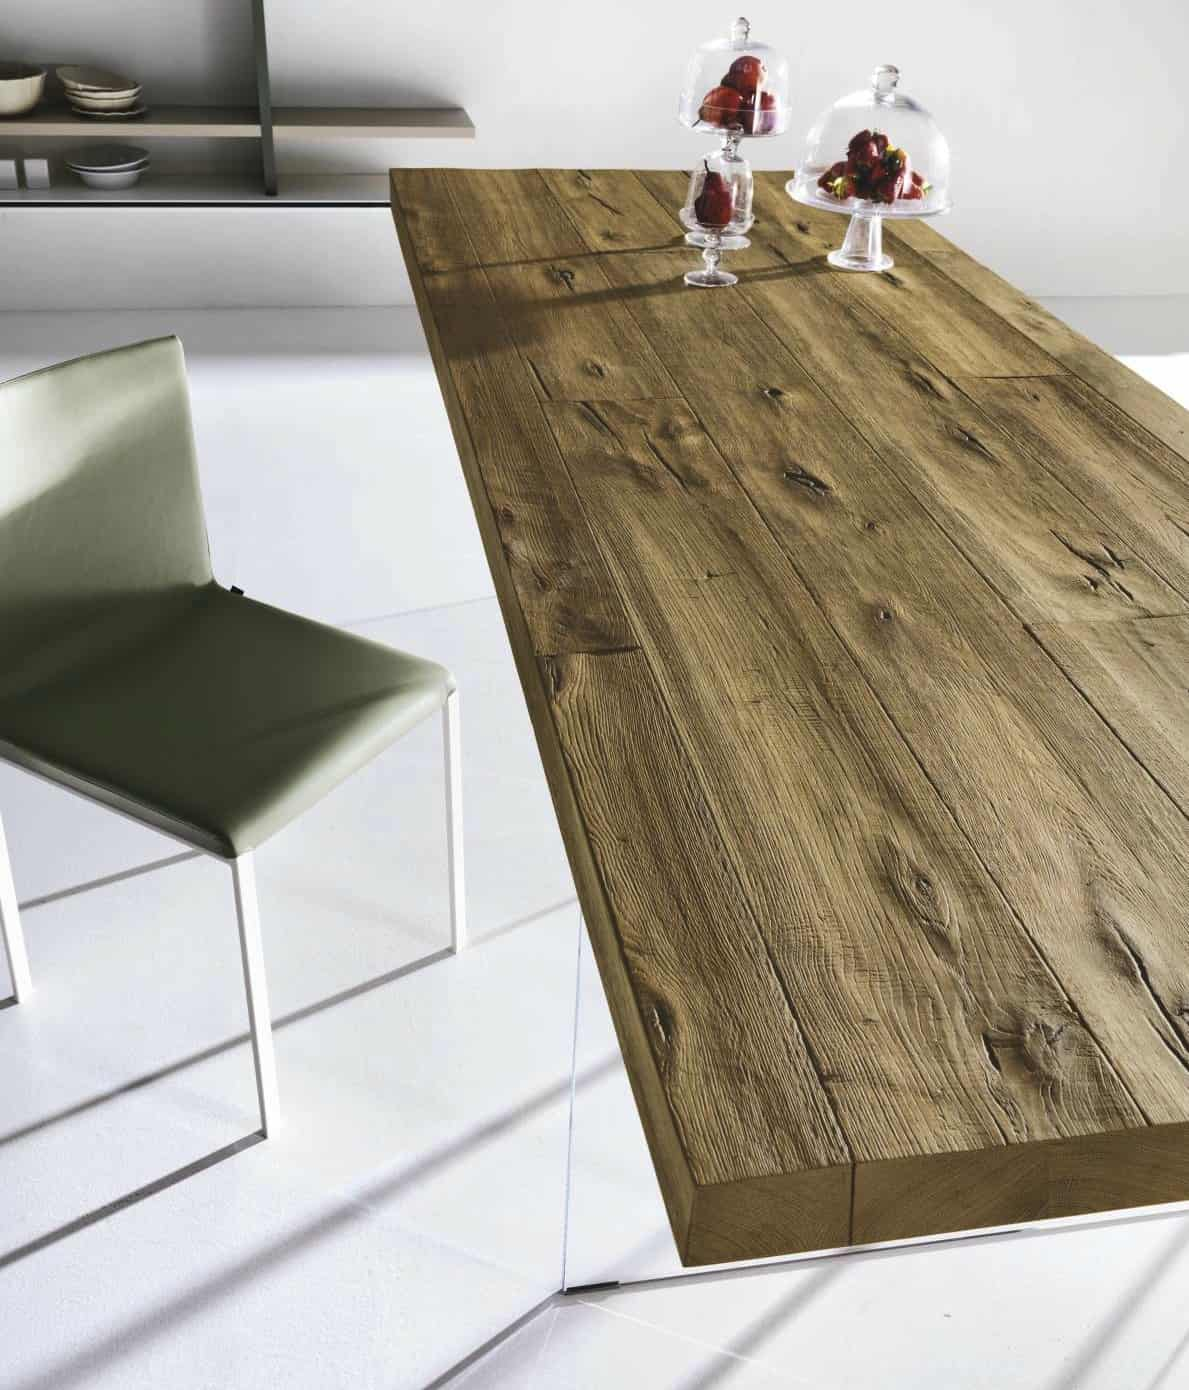 Air Tables by Lago Feature the Soul of Wood